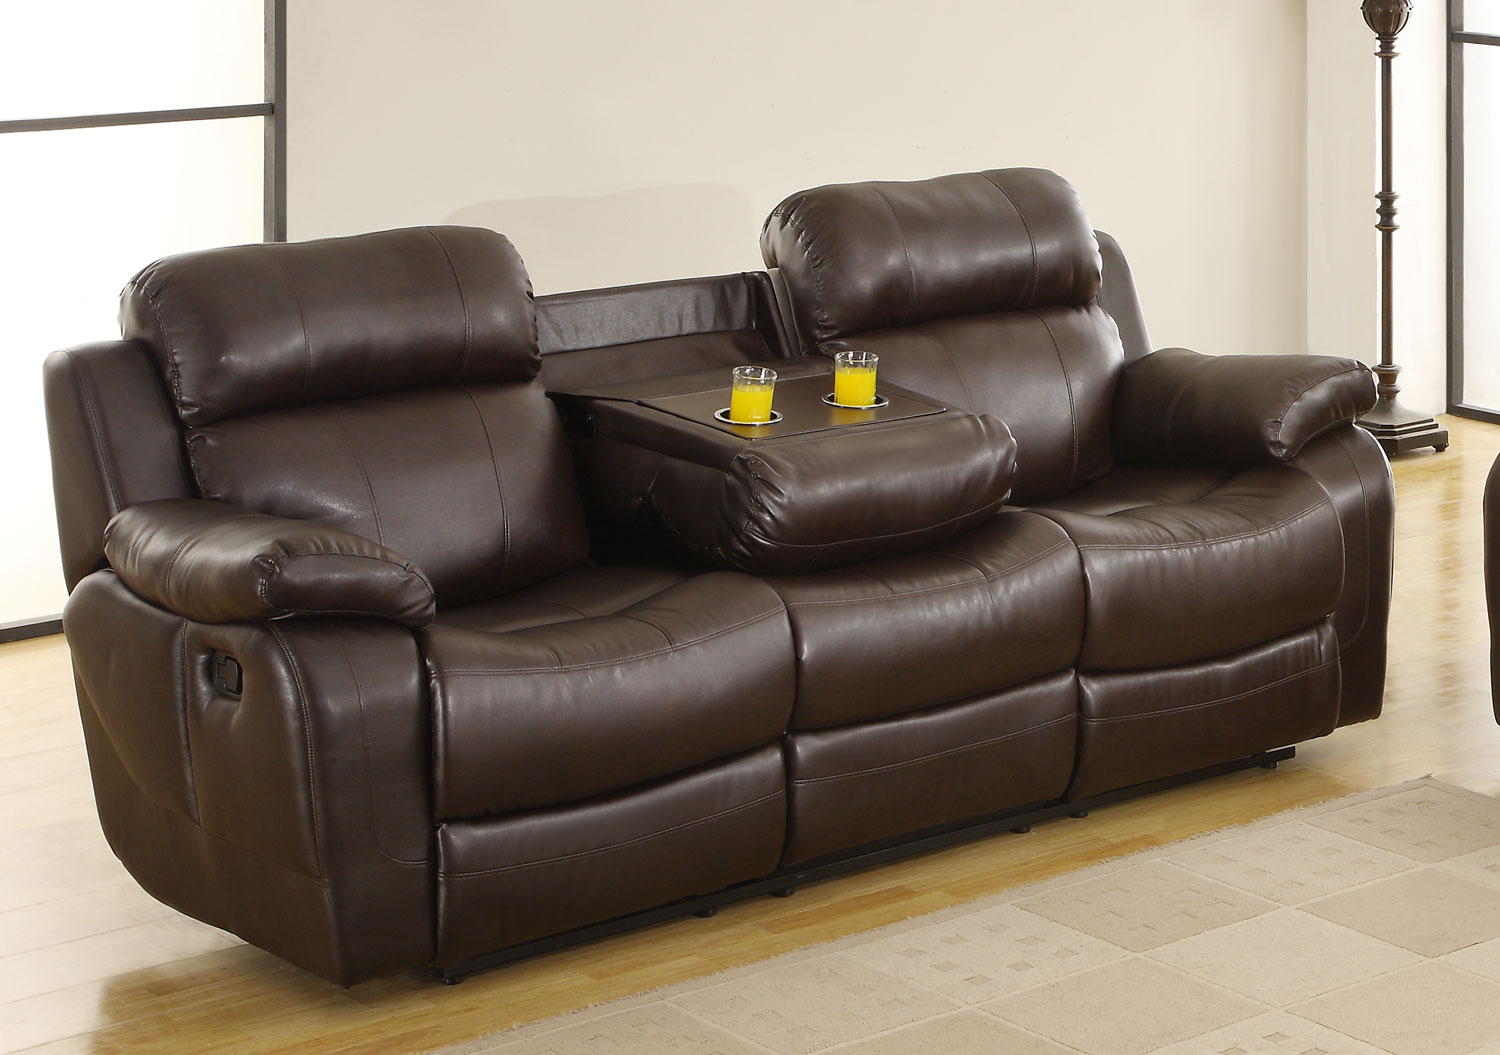 Homelegance Marille Sofa Recliner With Drop Cup Holder Dark Brown Bonded Leather Match